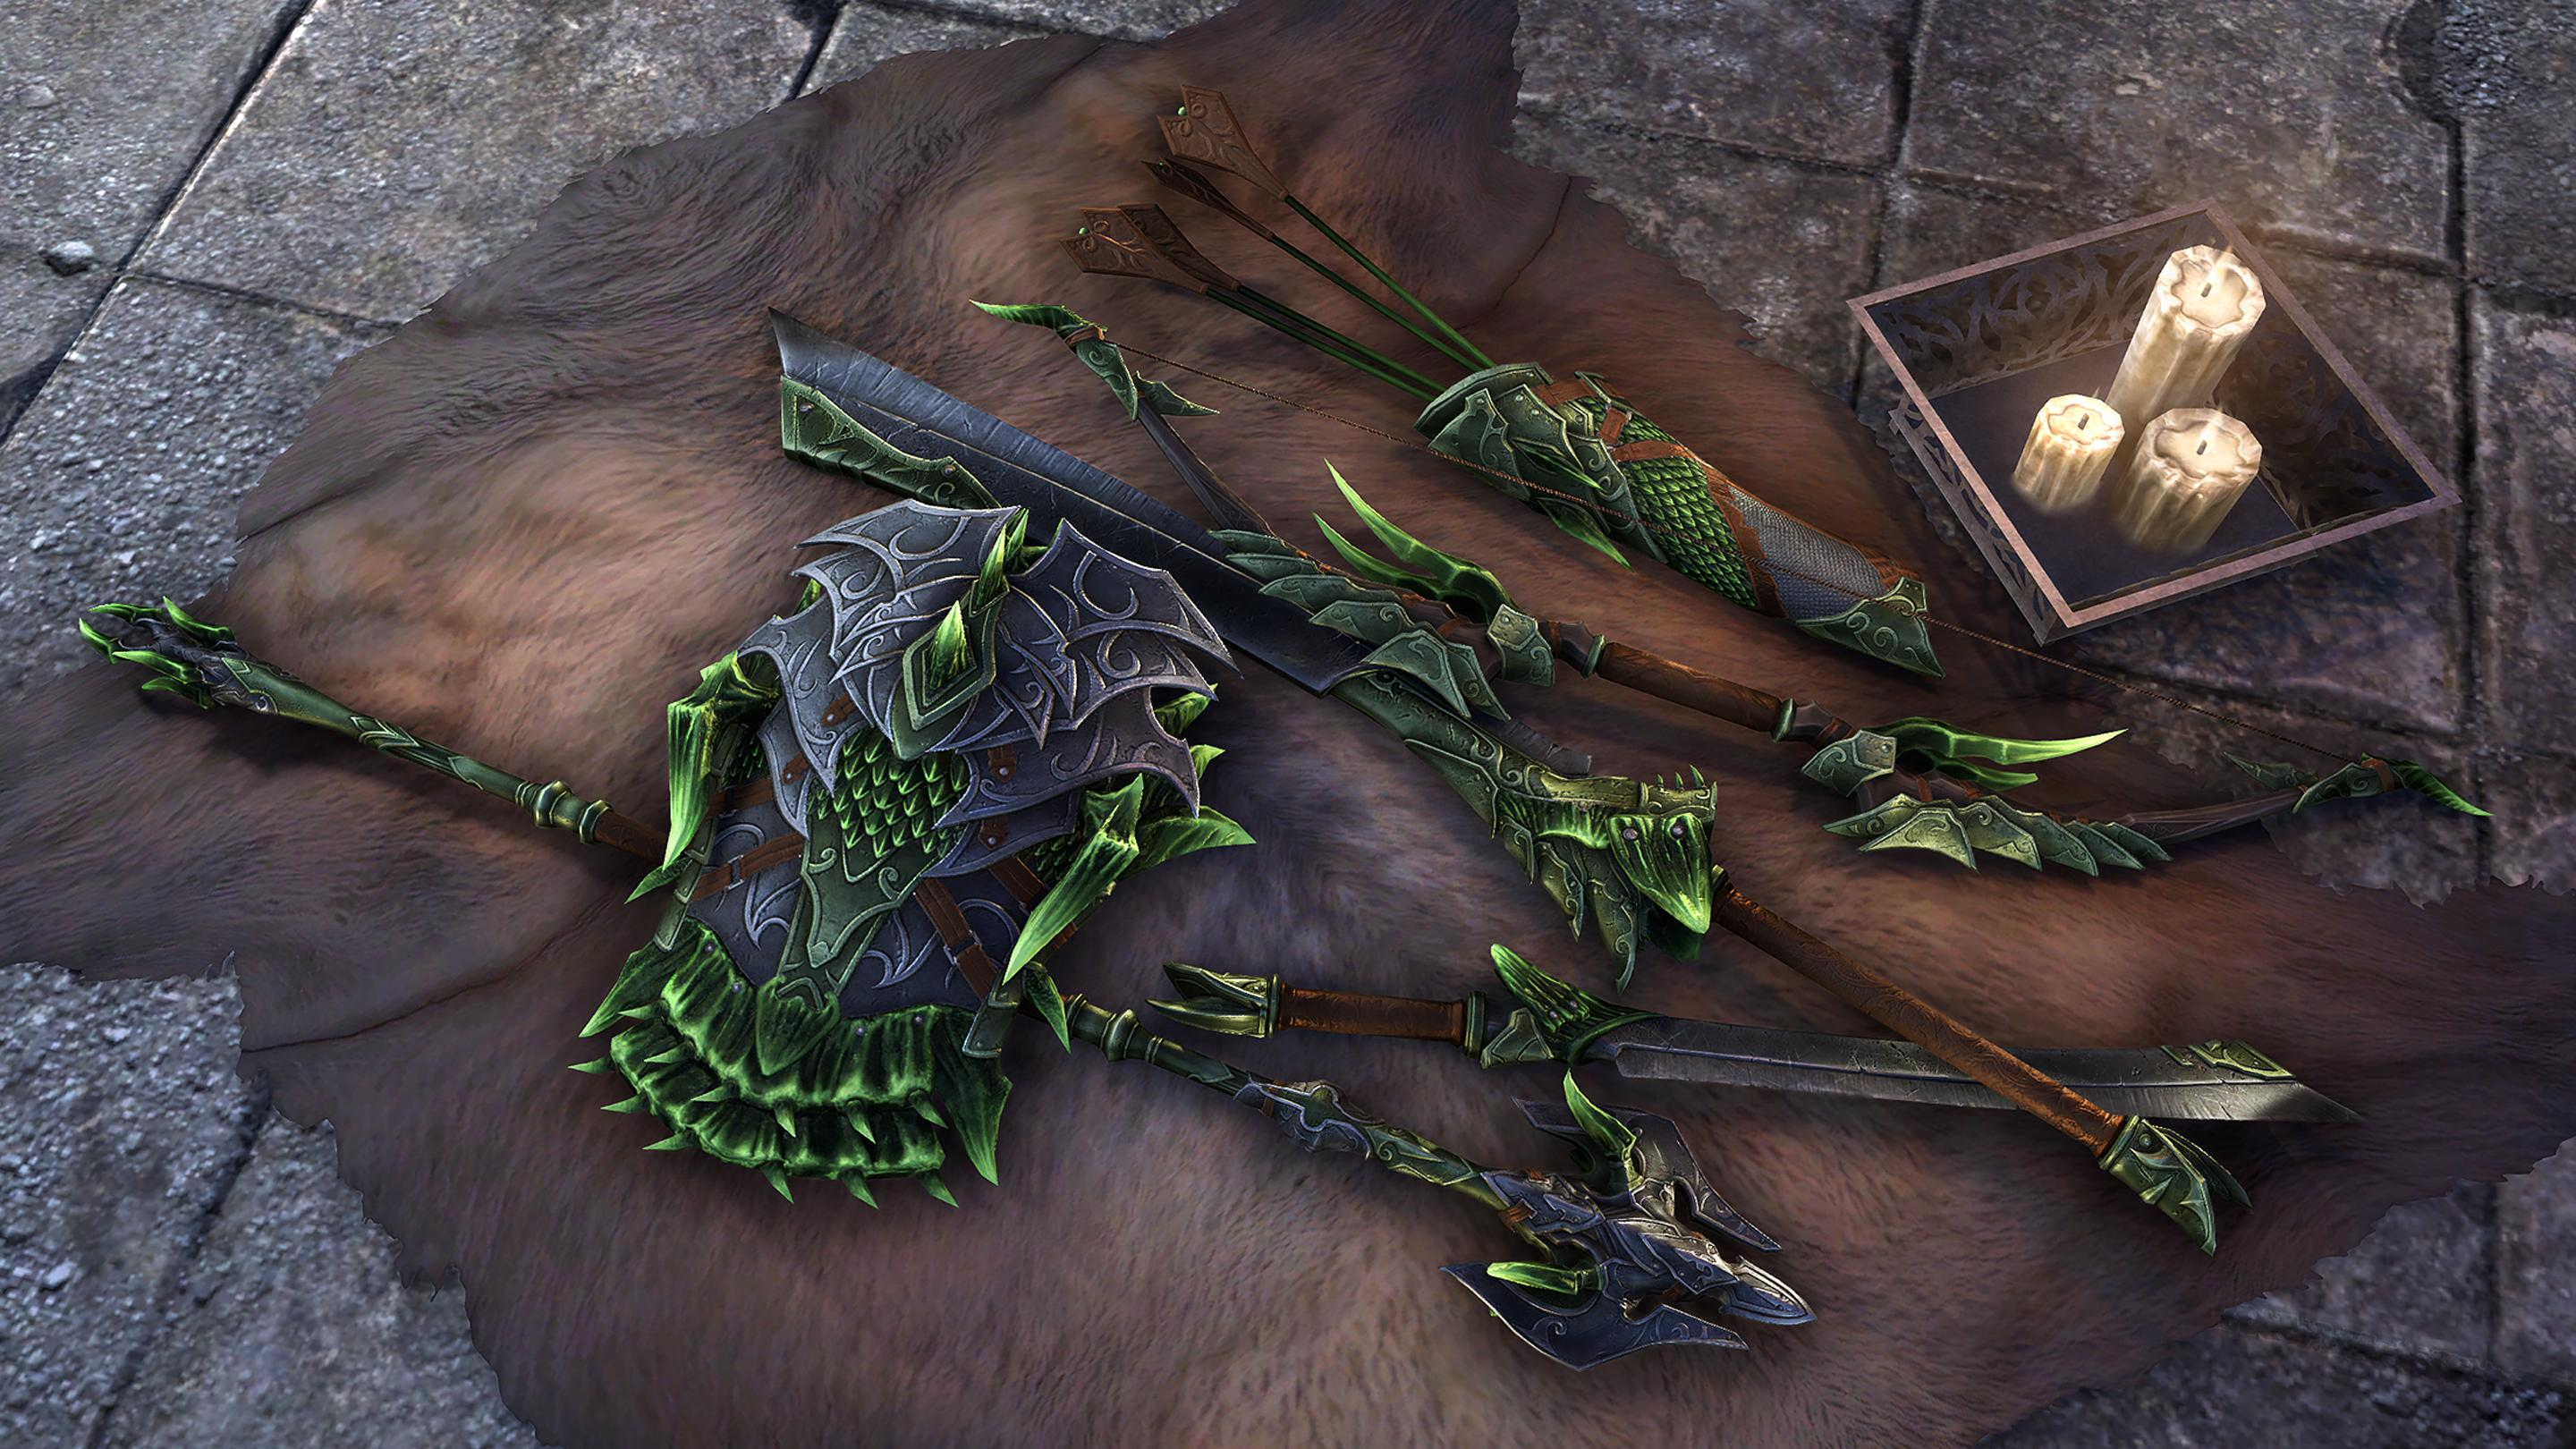 Legendary Dragon Arms Pack Crown Store The Elder Scrolls Online Legendary dragon armor pack 2,000 purchase. legendary dragon arms pack crown